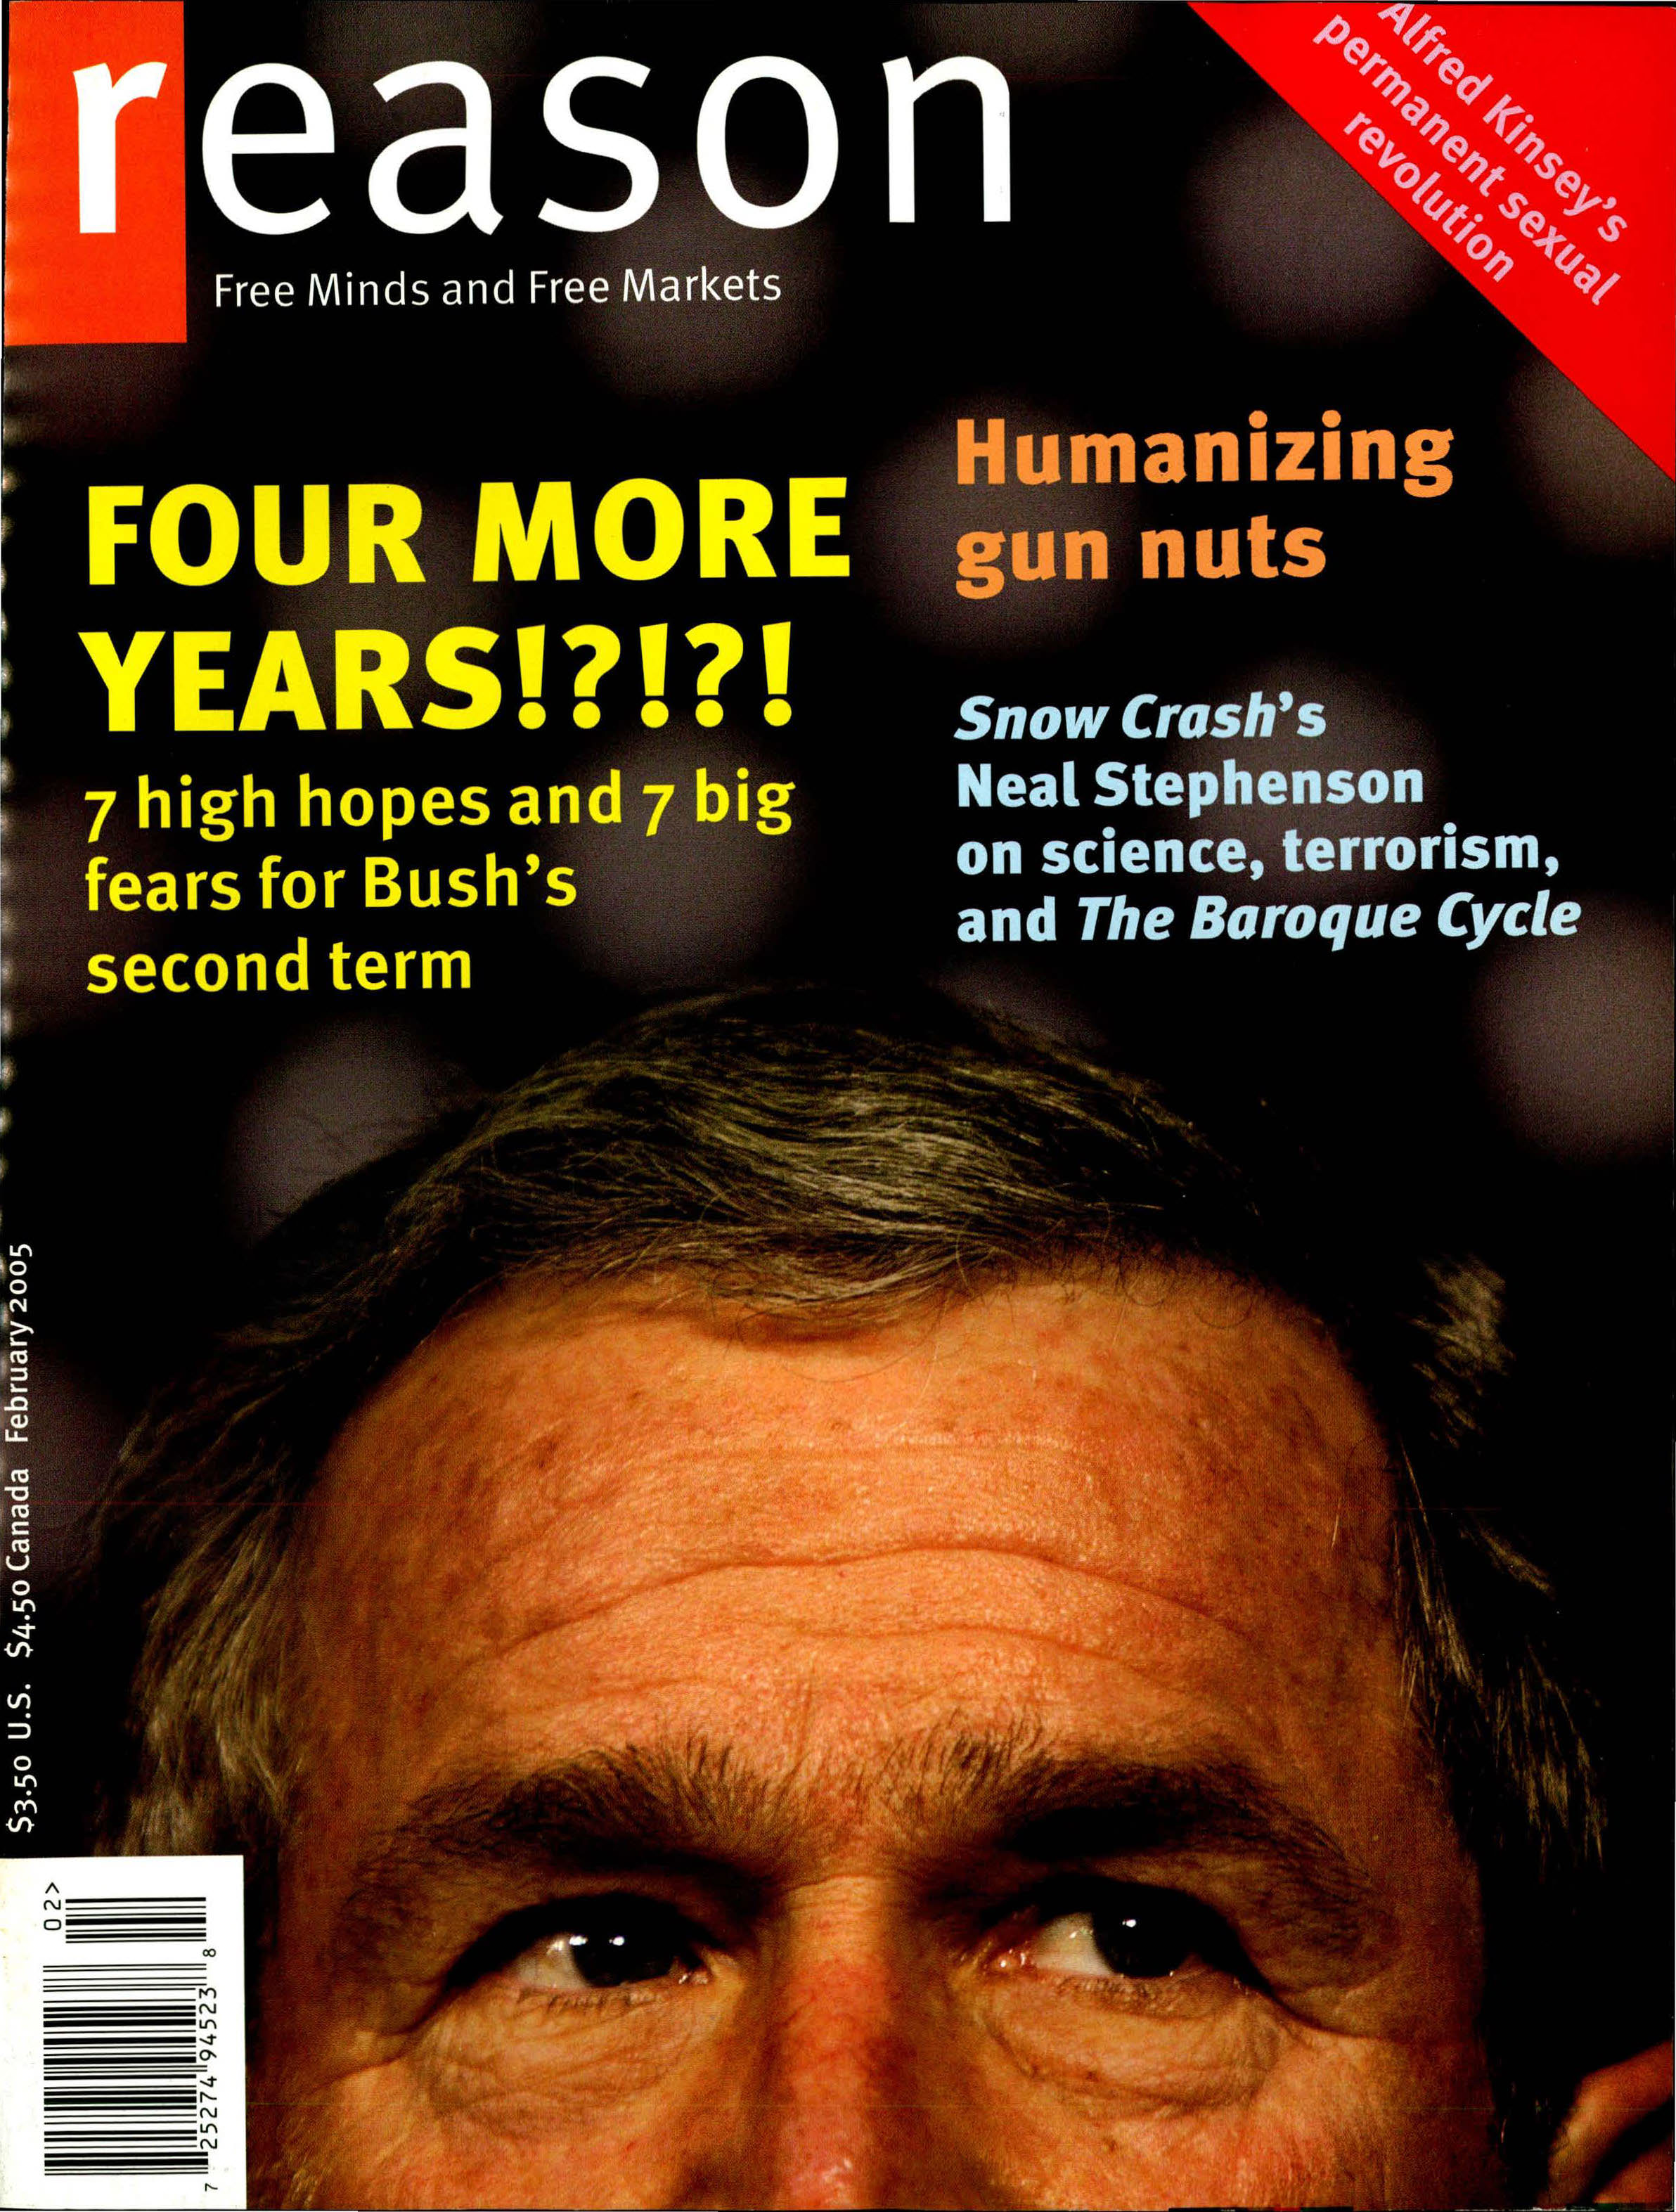 Reason Magazine, February 2005 cover image